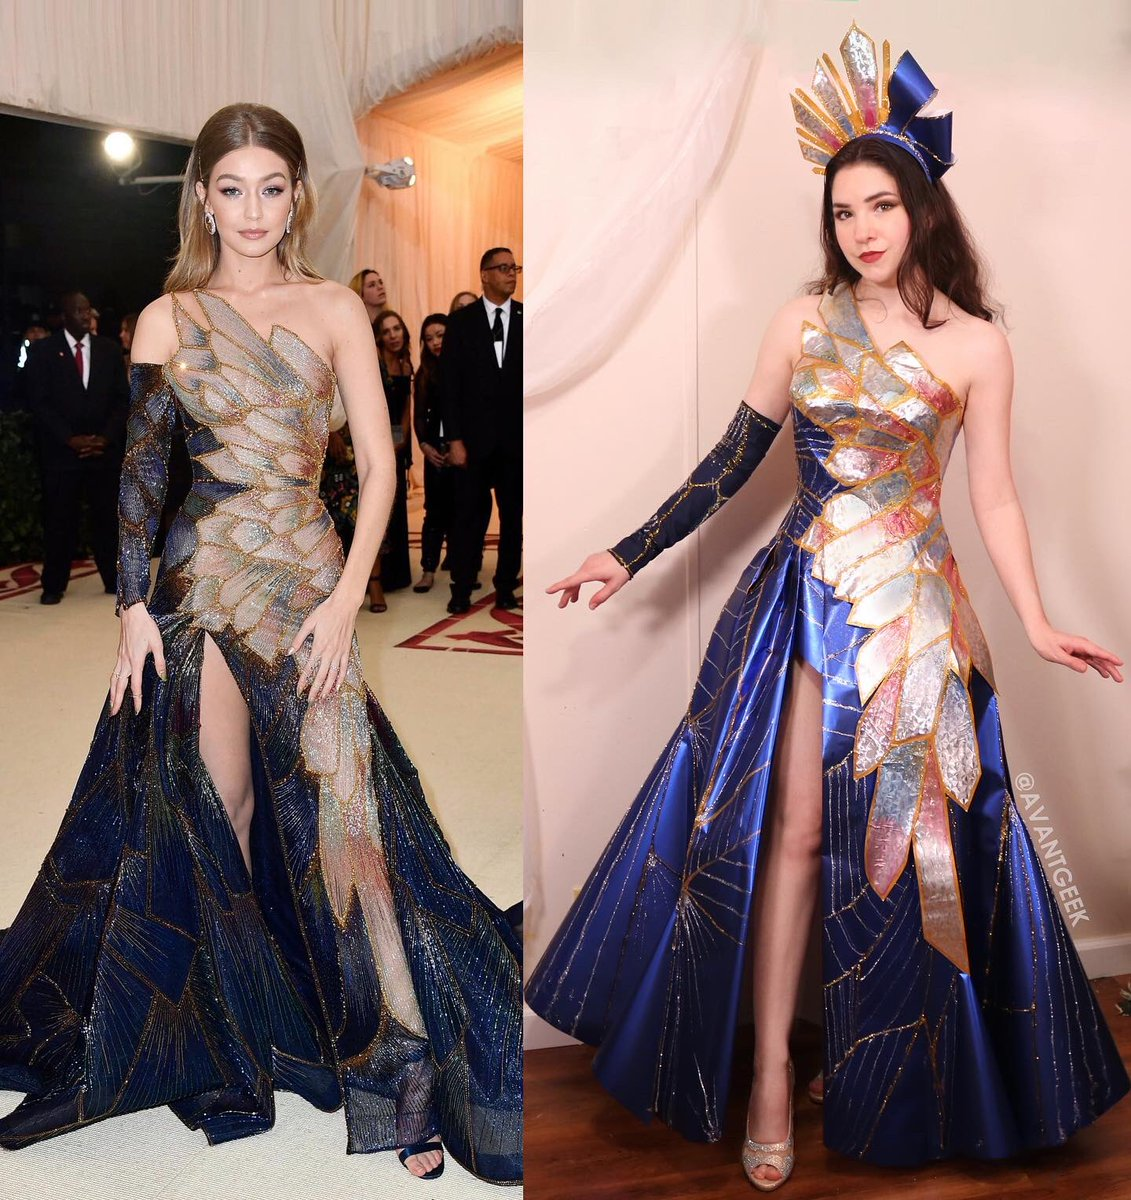 Finished my #metgalachallenge with a paper dress based on Gigi Hadid's Versace look. I'm really pleased with how it turned out considering it's made ENTIRELY of last Christmas' leftover wrapping paper, glue, paint, and a pillowcase for the sleeve. 😄 https://t.co/QgpWXVe0Jx